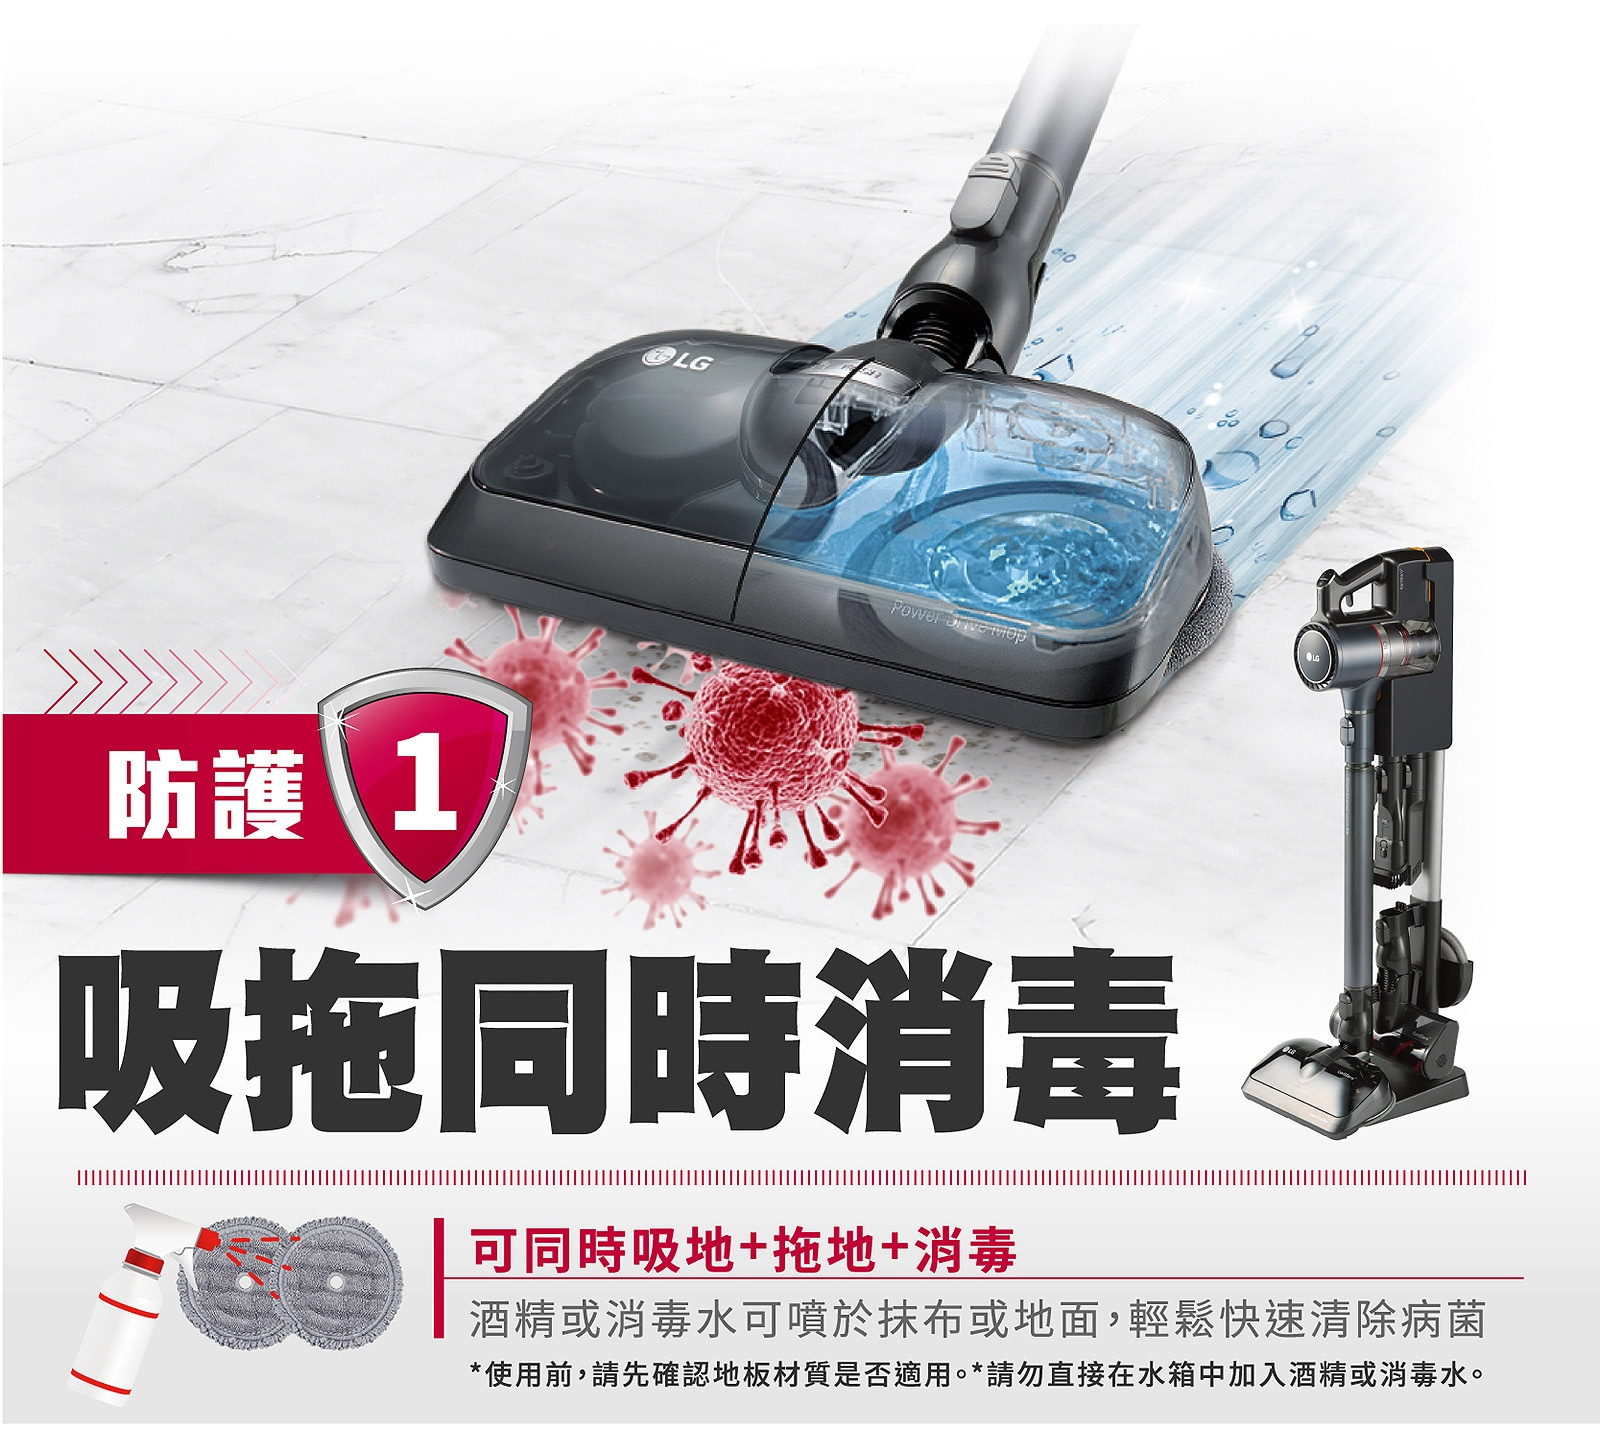 vacuum-cleaner_A9P-feature2-D